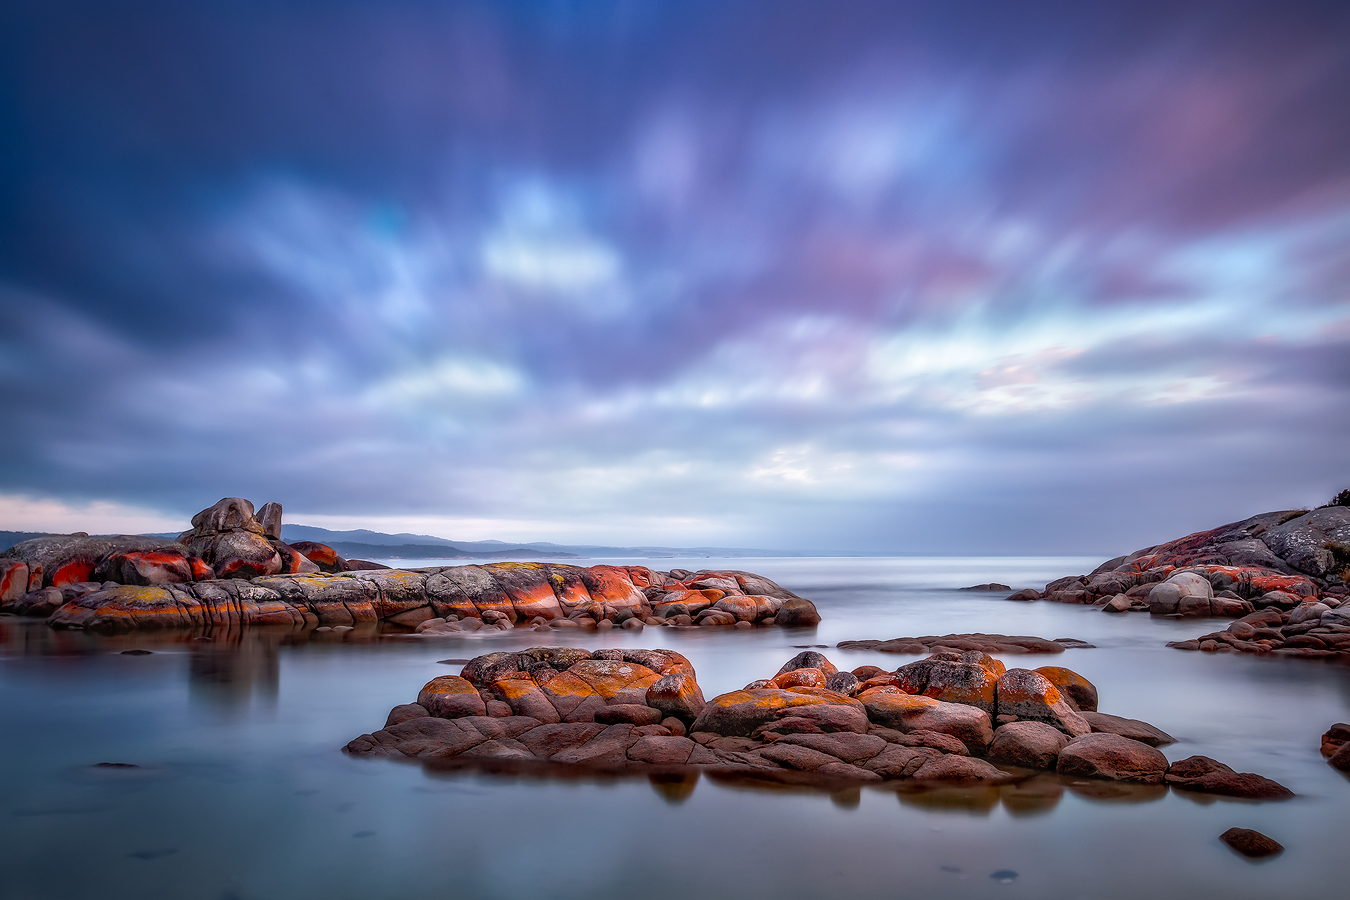 Tasmania Landscape Photography Tour - Binalong Bay in the Bay of Fires | Holiday with We Are Raw Photography Tours